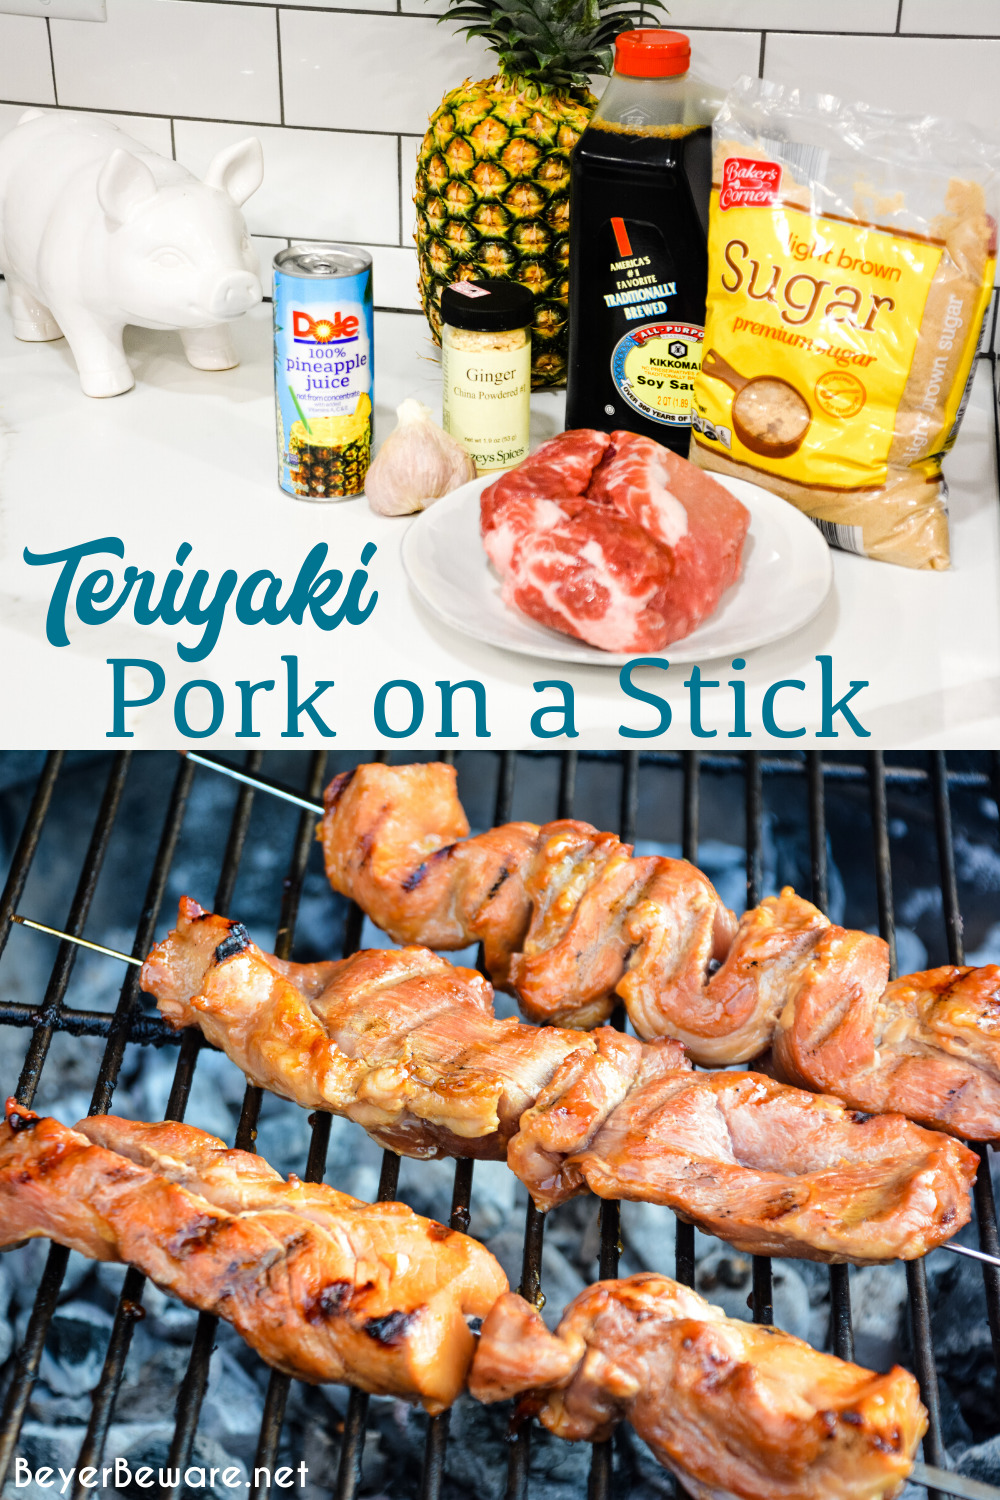 Teriyaki Pork on a Stick is a simple pork marinade recipe made from soy sauce, brown sugar, pineapple juice, and ginger that is perfect for grilled pork.